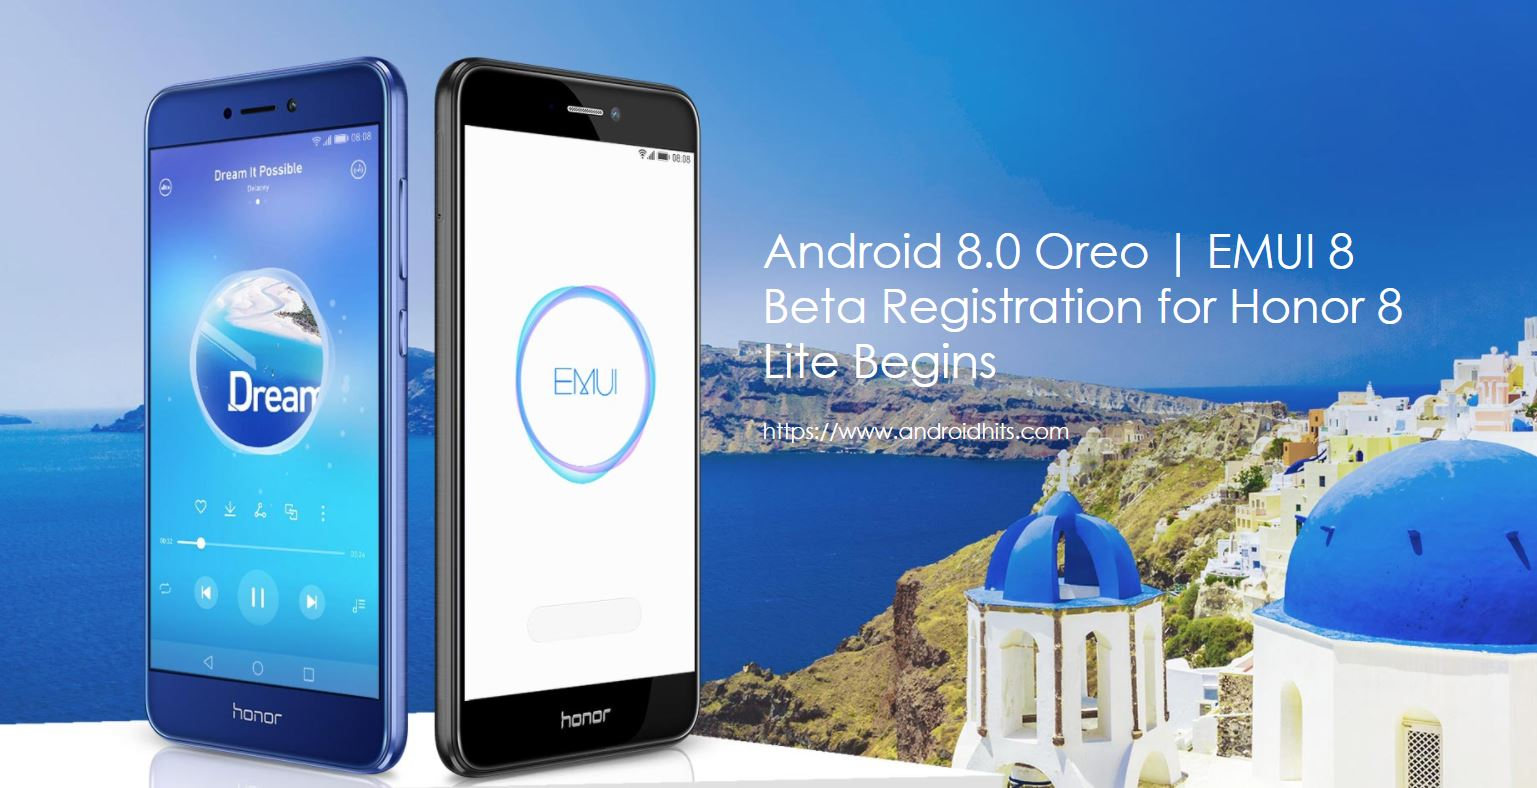 Android 8 0 Oreo with EMUI 8 Beta for Honor 8 Lite registration